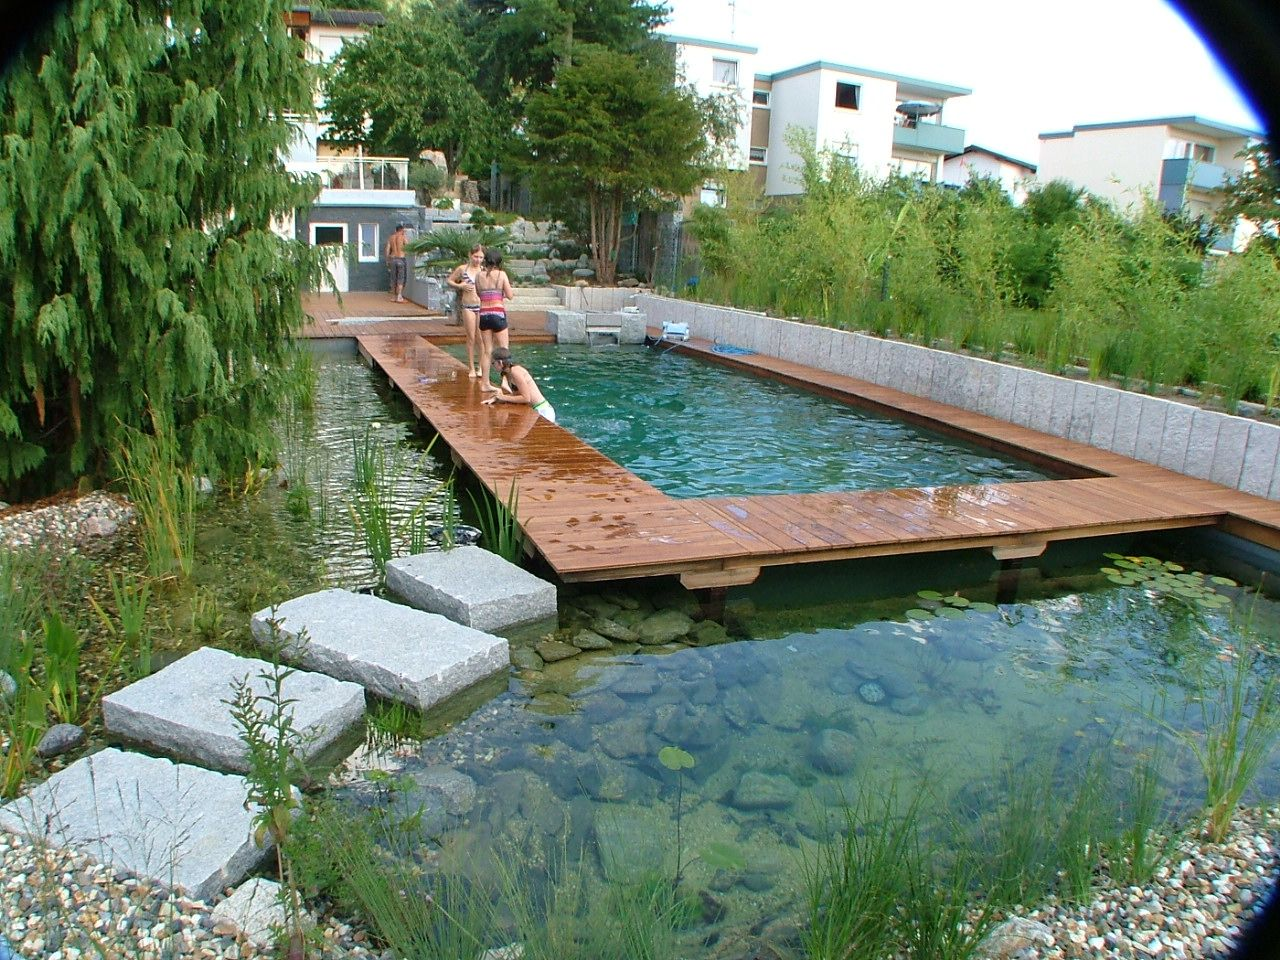 Bionova Natural Swimming Pool In Germany Bionova Natural Pools Pinterest Natural Swimming